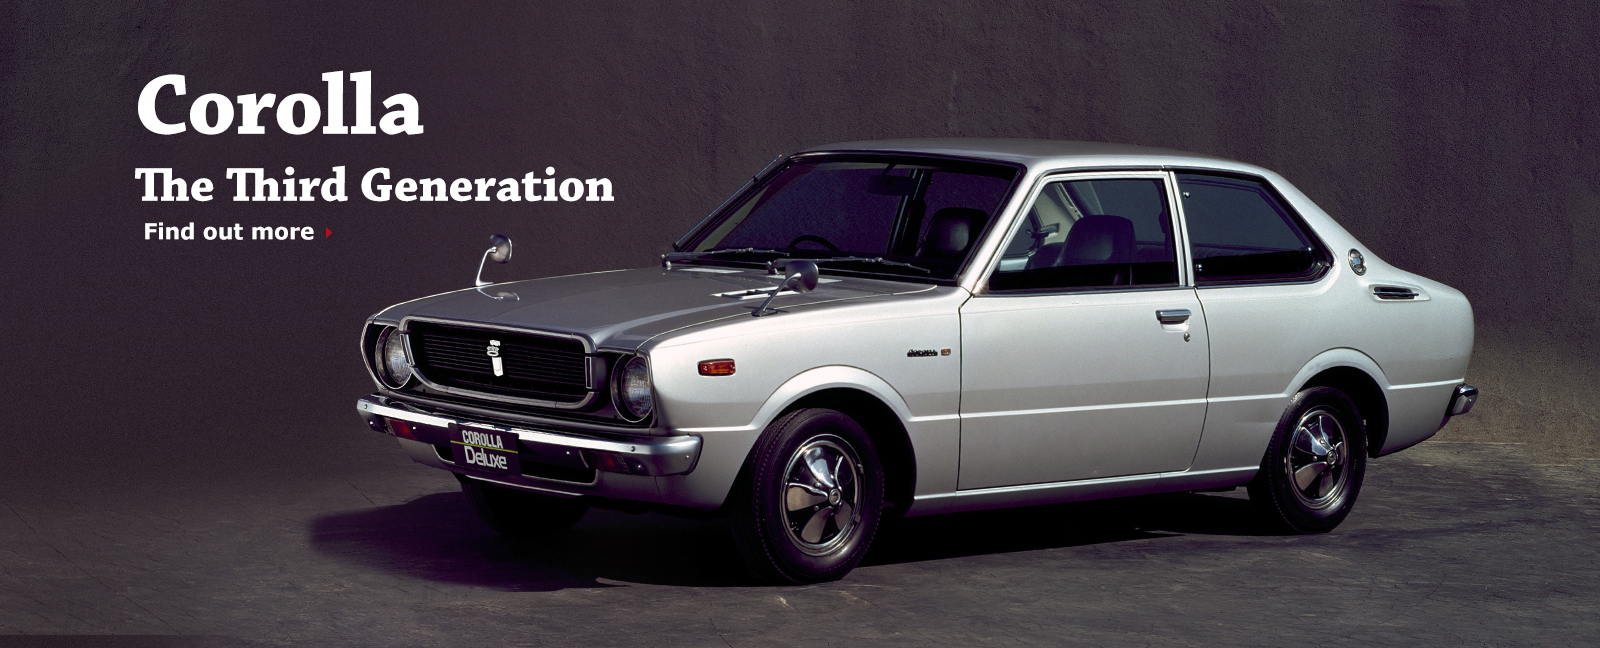 Corolla The Third Generation Find out more